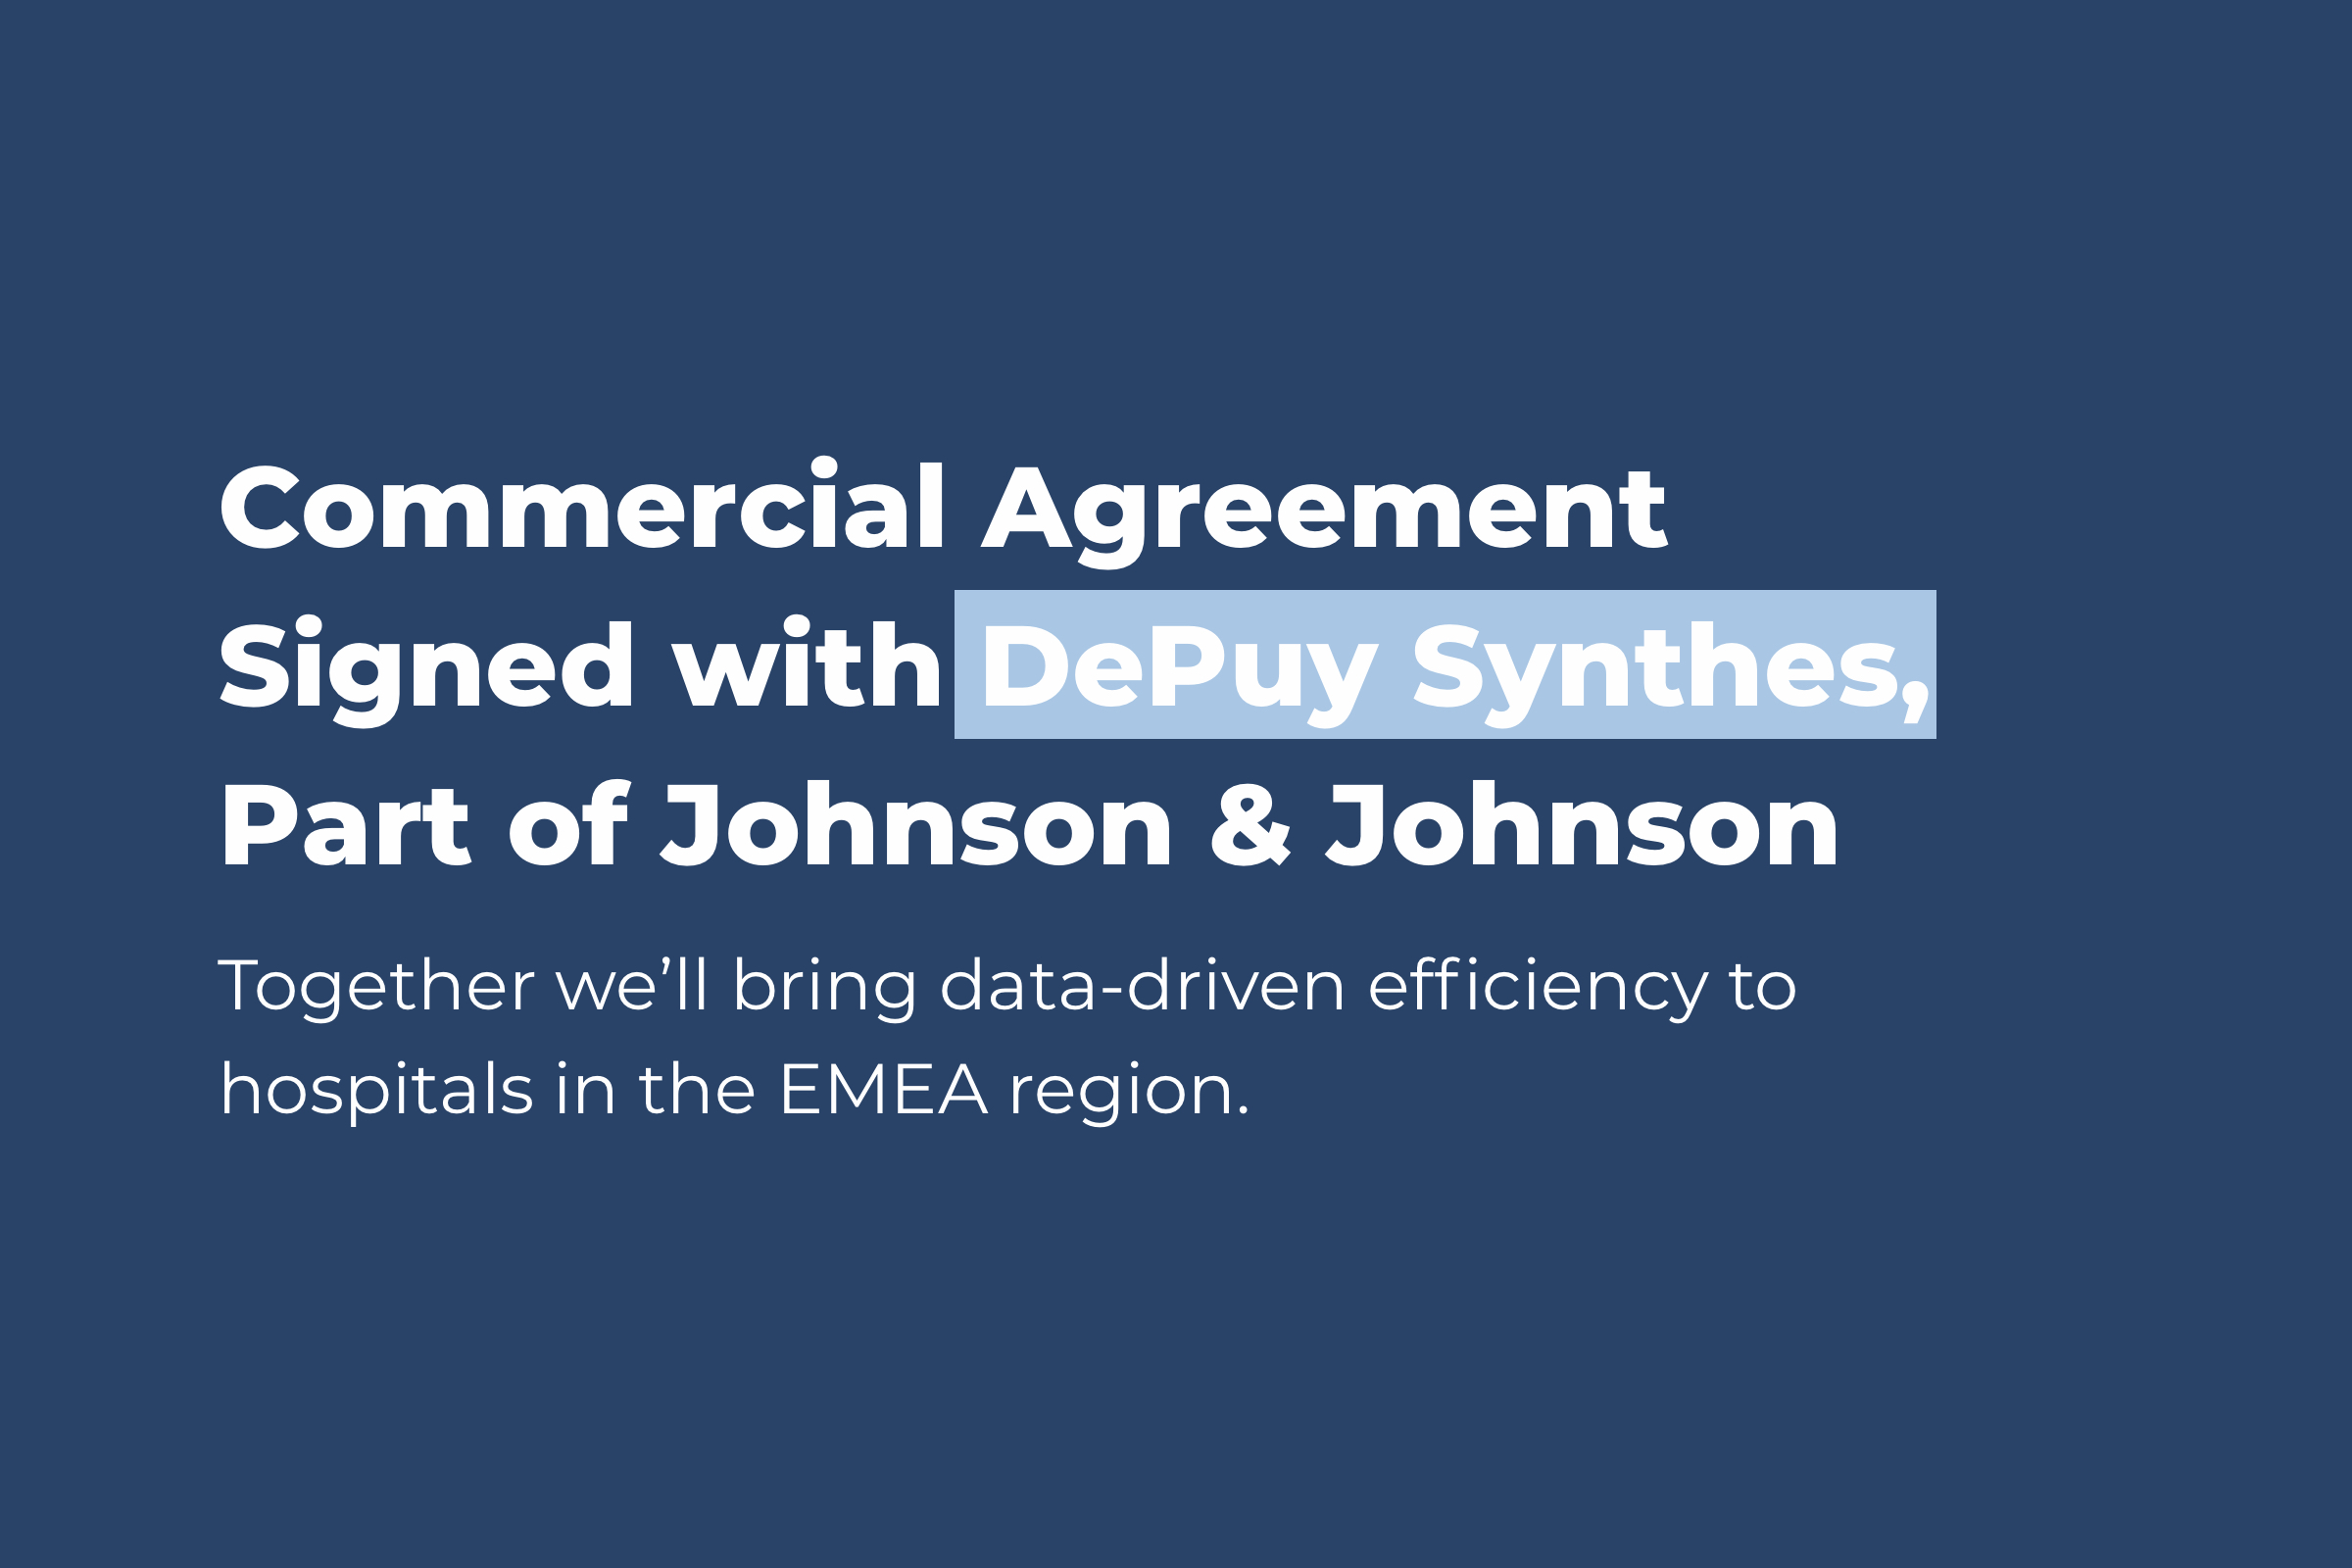 DePuy Synthes, Johnson and Johnson, J&J, JnJ, DSP, DEO, data-driven efficiency, OR efficiency